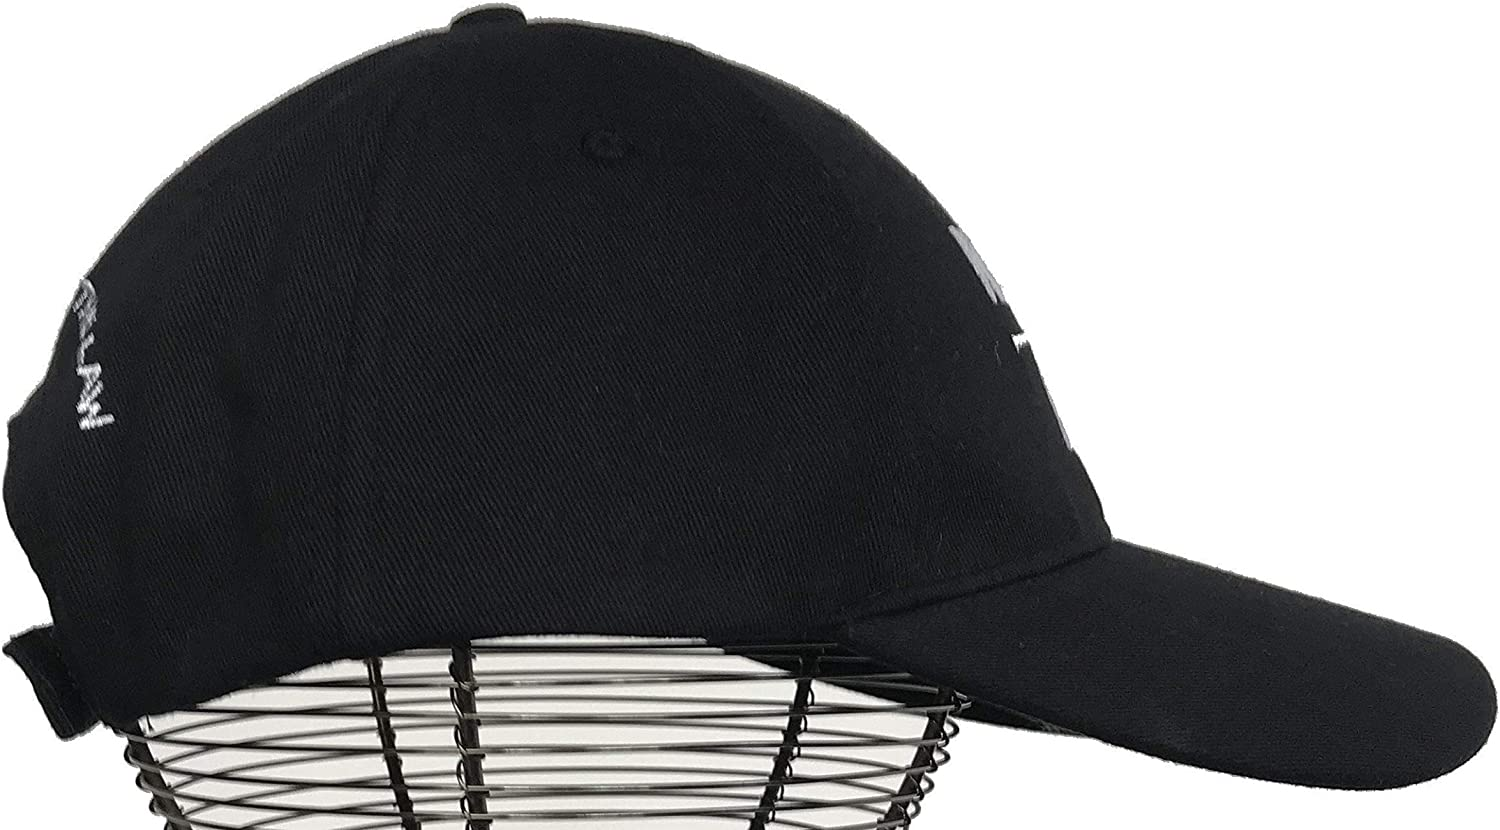 Baseball Cap for Patriotic America Quality 100/% Cotton Black Hat No One is Above The Law Election 2020 Campaign Clothing